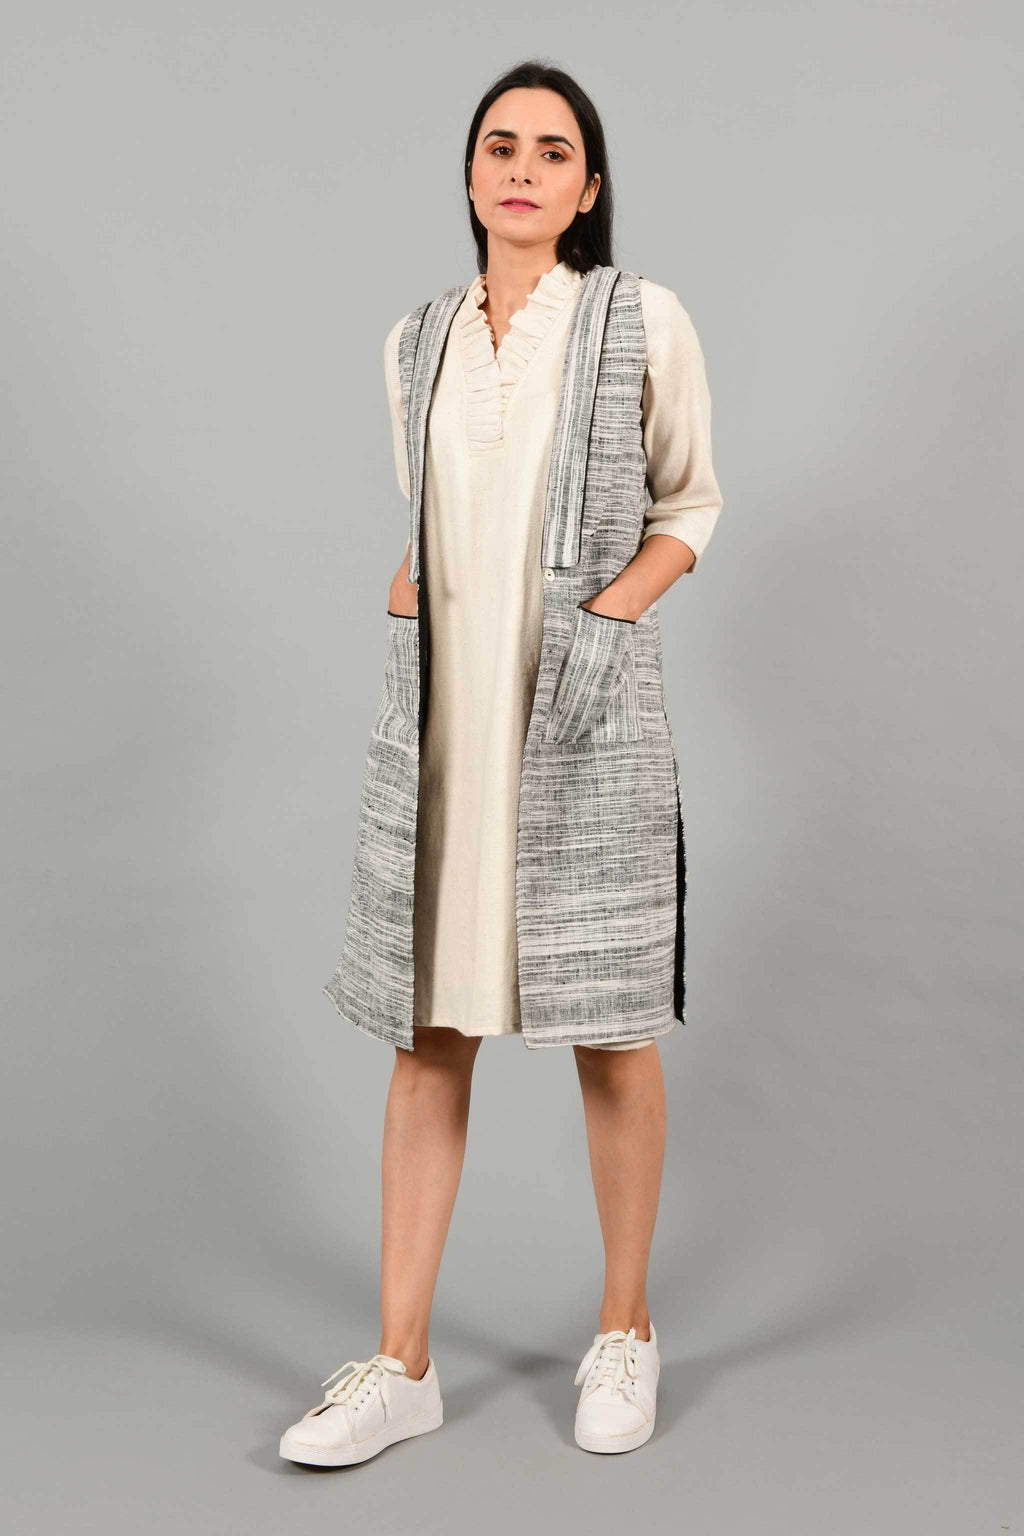 Front pose of an Indian Womenswear female model wearing black and white thicker handspun and handwoven khadi Jacket over a Cashemer Cotton Dress by Cotton Rack.